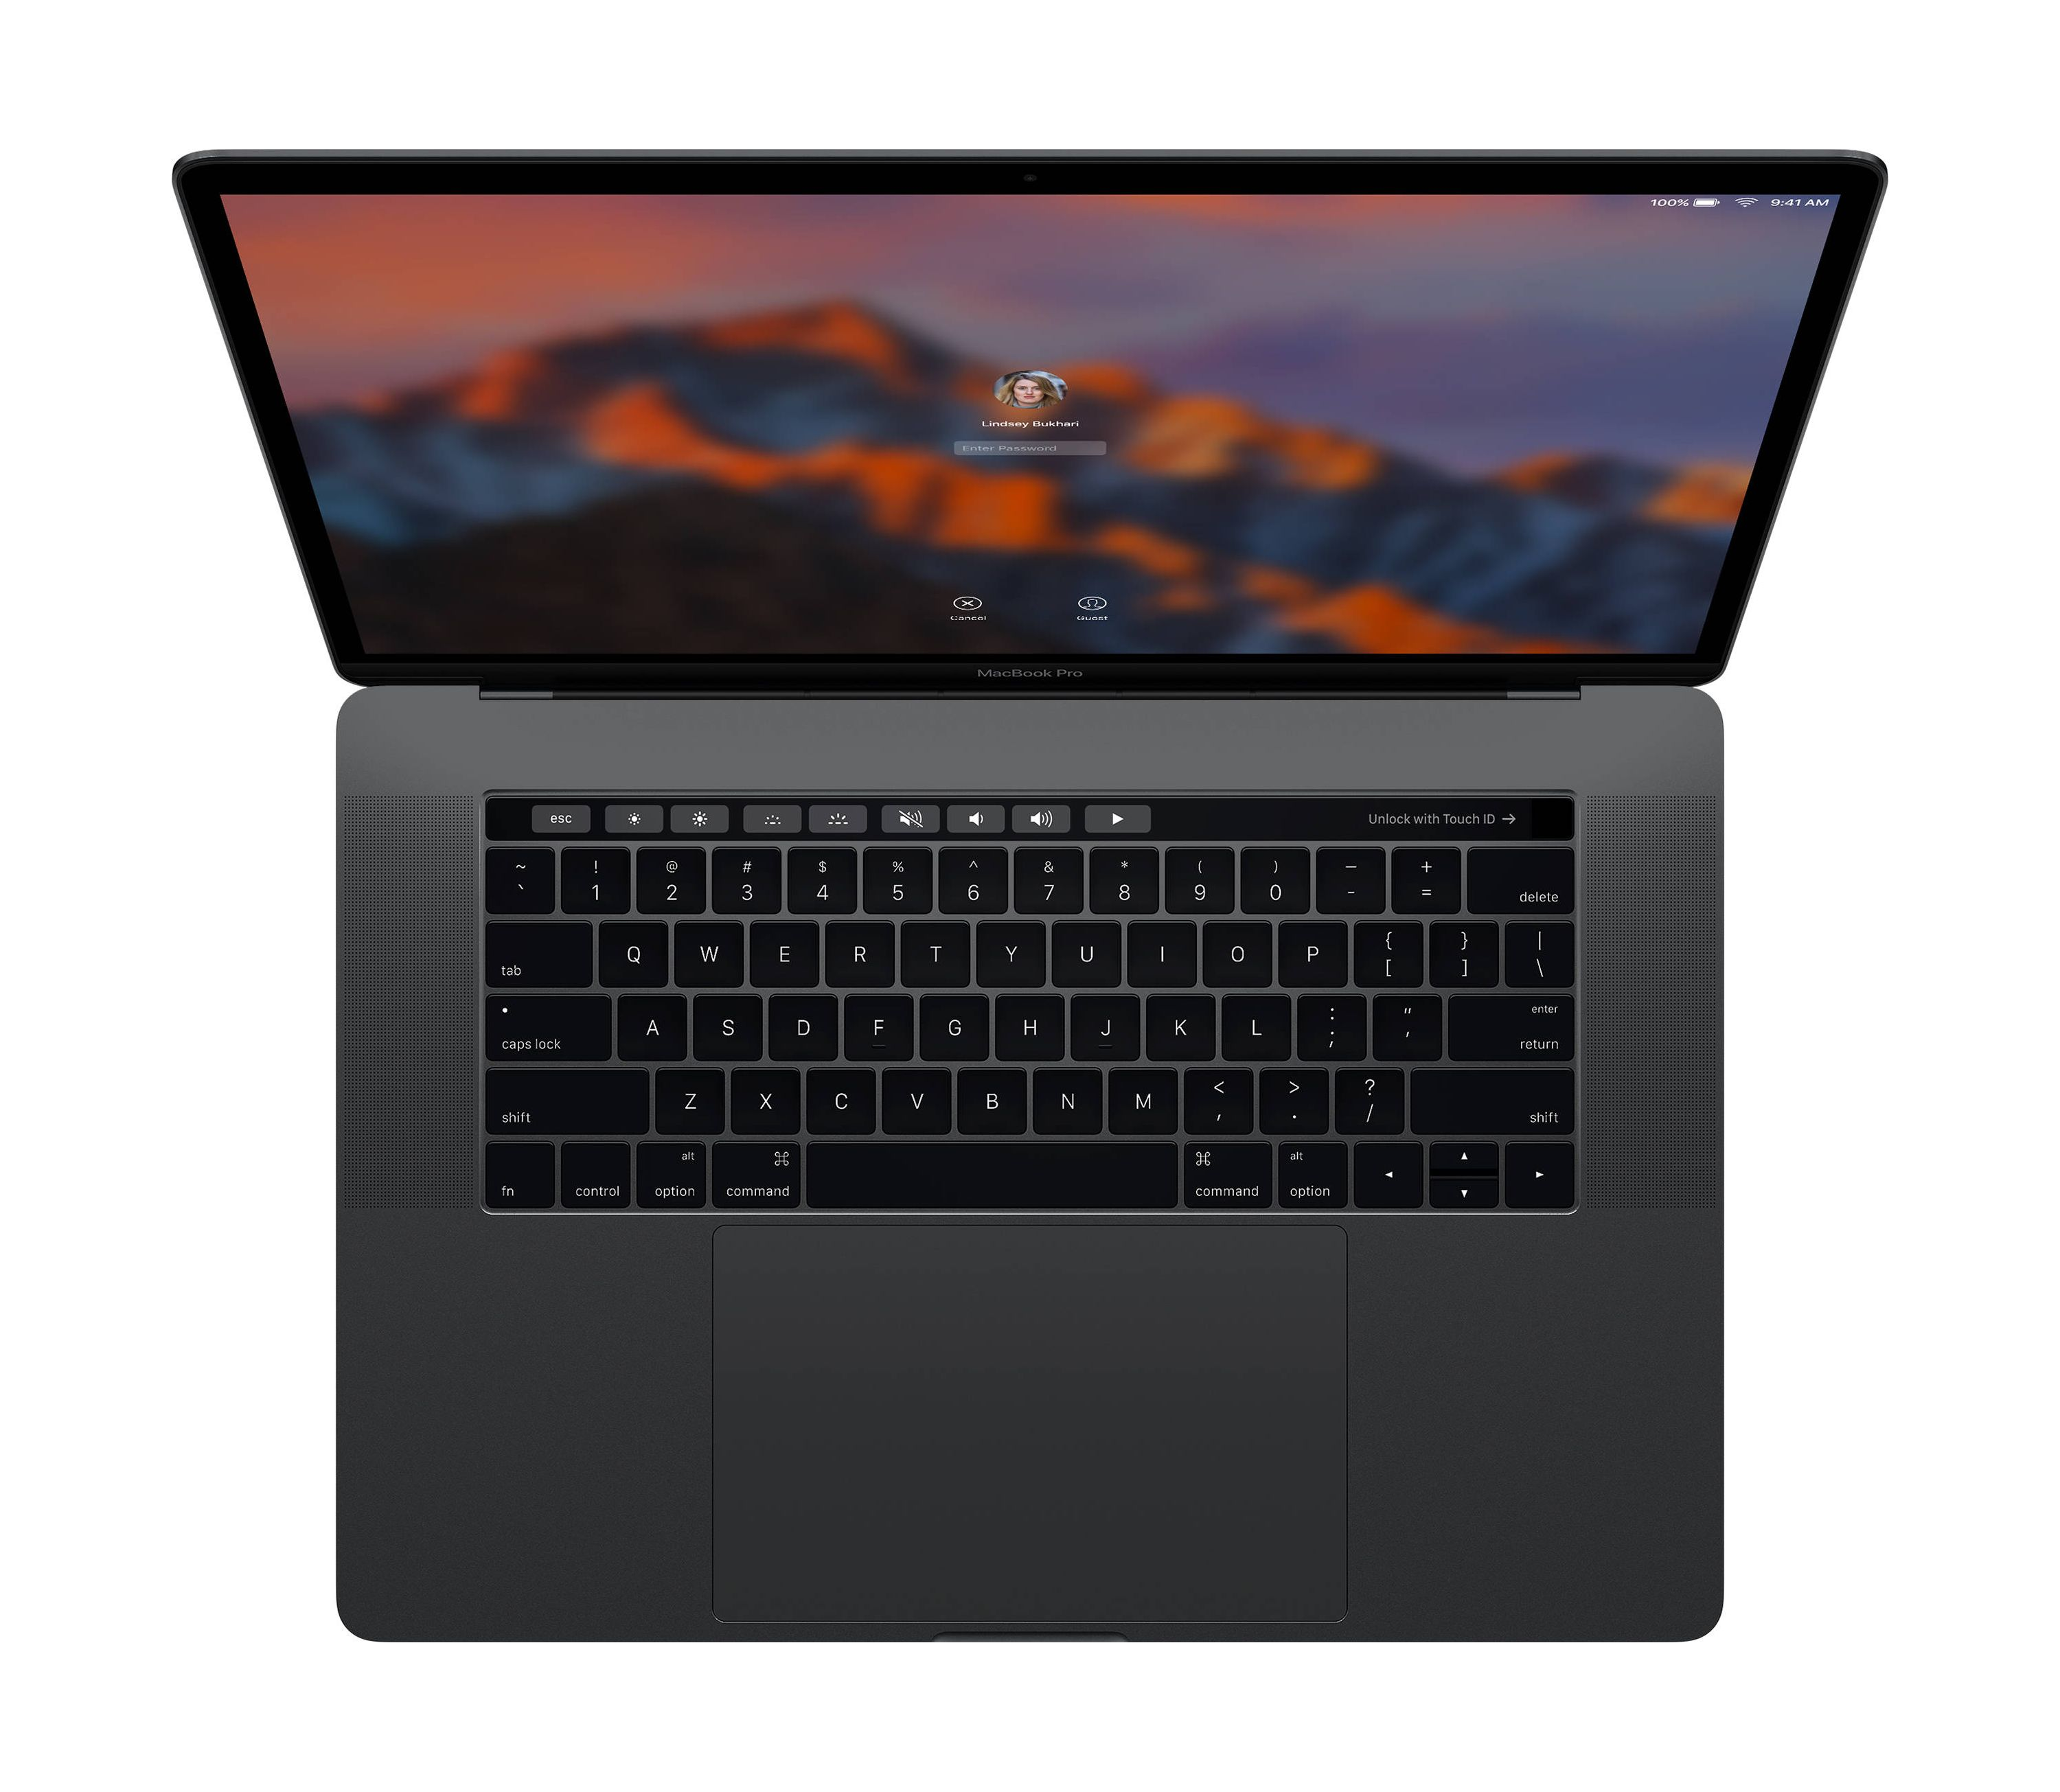 apple macbook pro 13 core i5 8gb ram 256gb ssd 13 3 inch. Black Bedroom Furniture Sets. Home Design Ideas